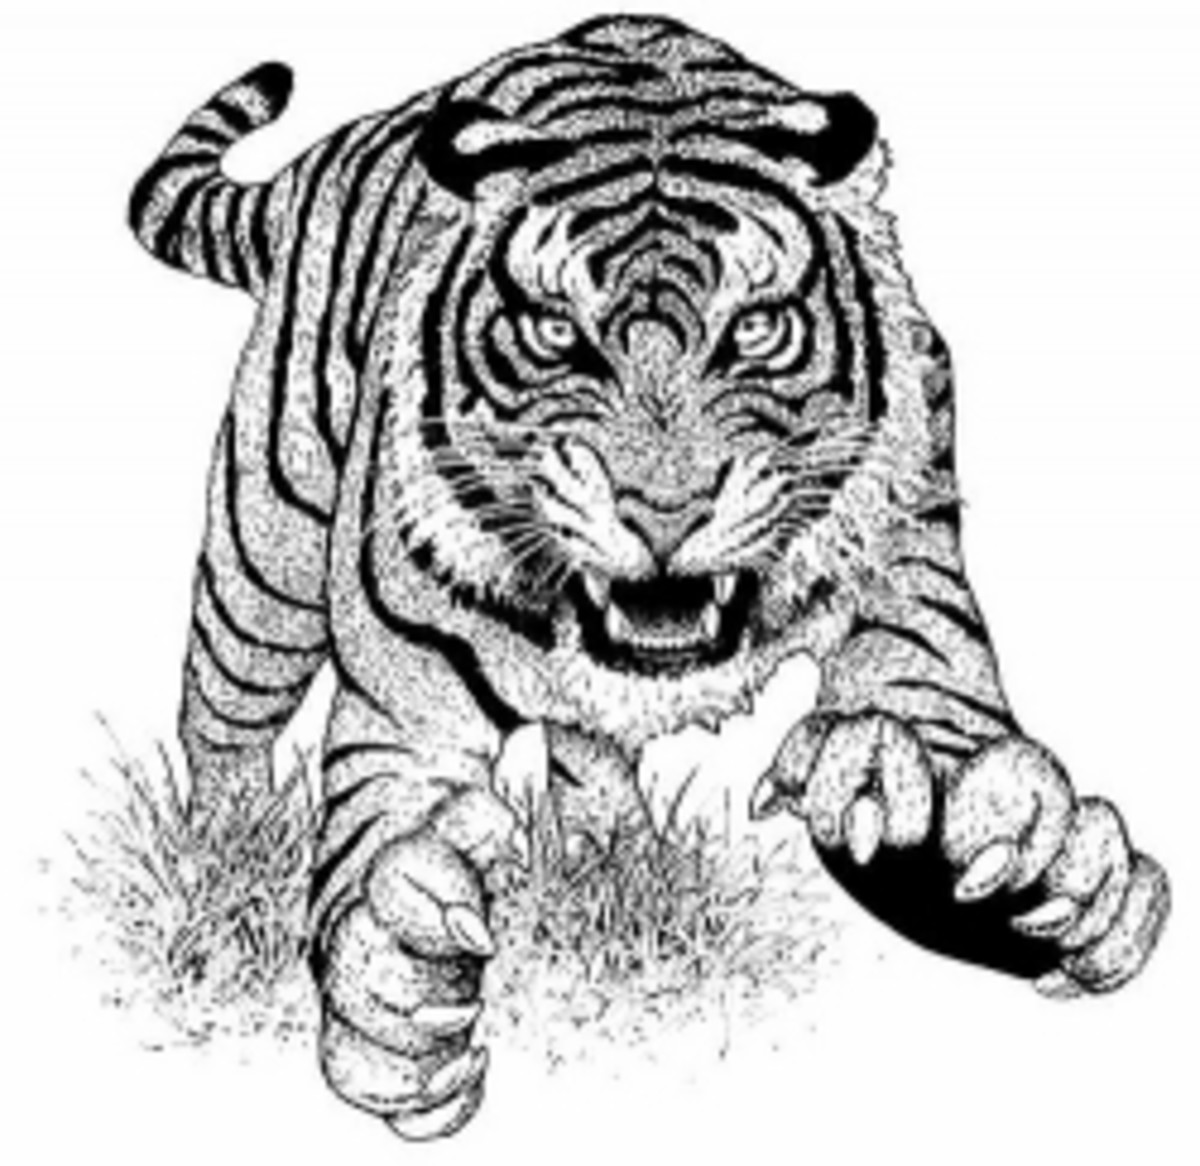 Endangered Animals Species List Kids Coloring Pages Free Colouring Pictures to Print - Bengal Tiger